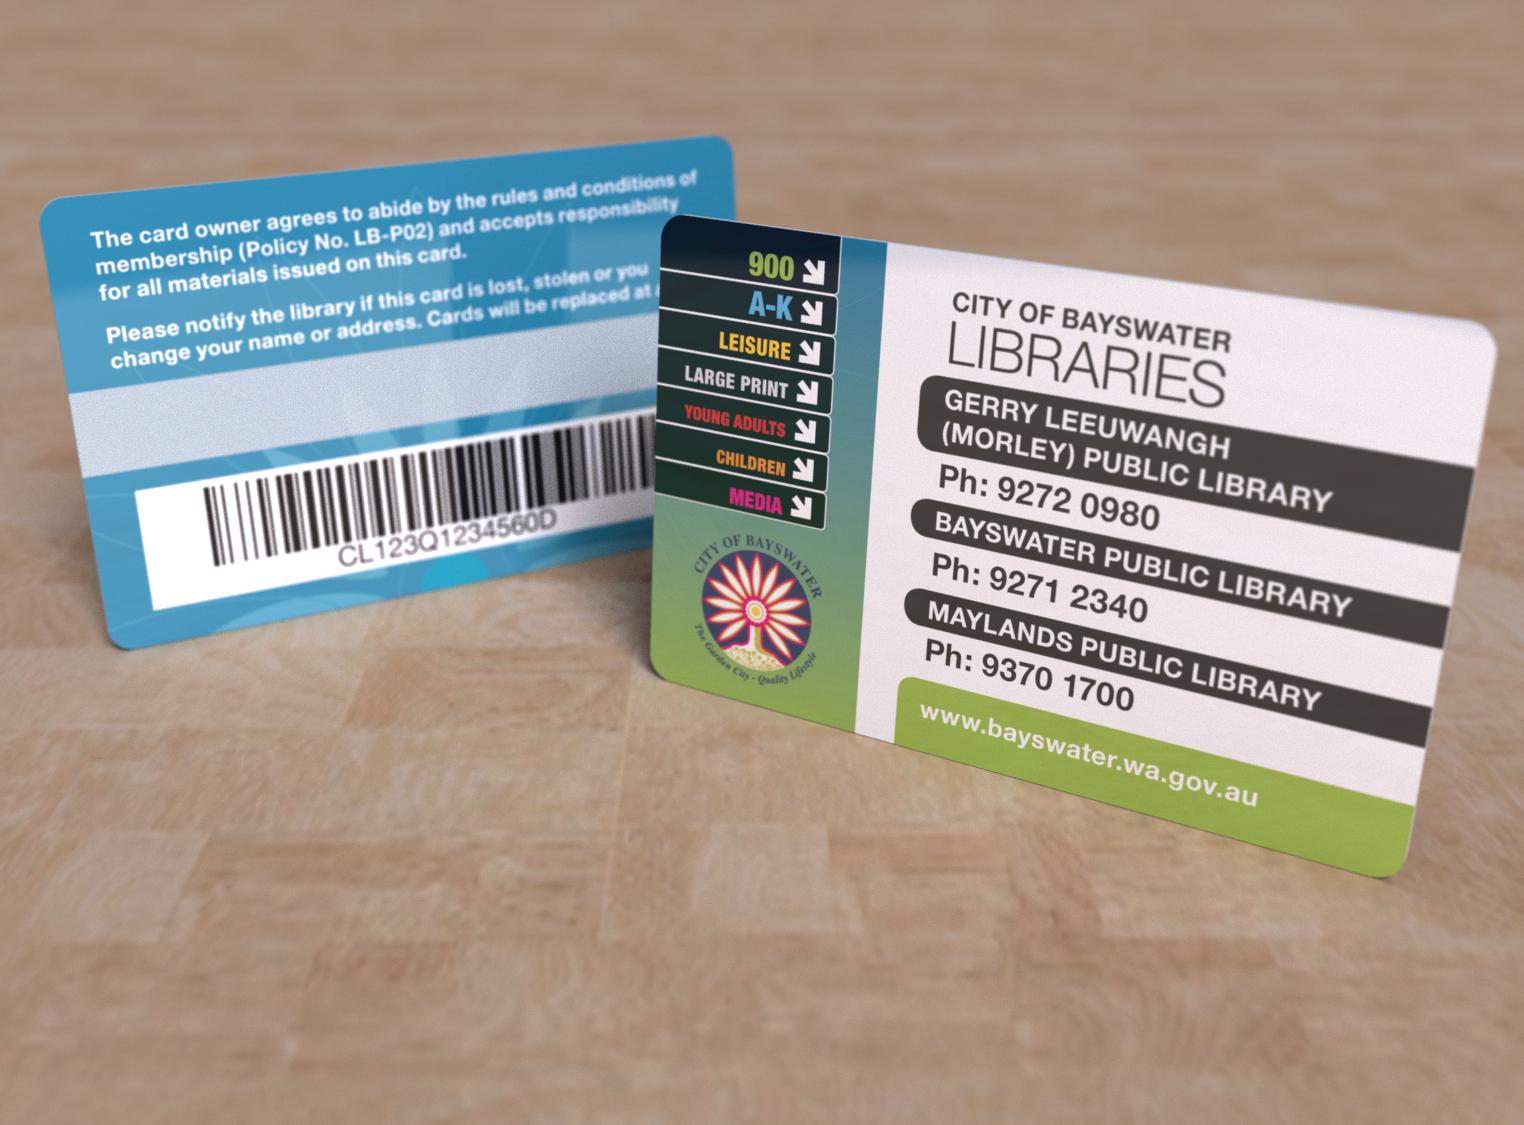 Library Card - City of Bayswater